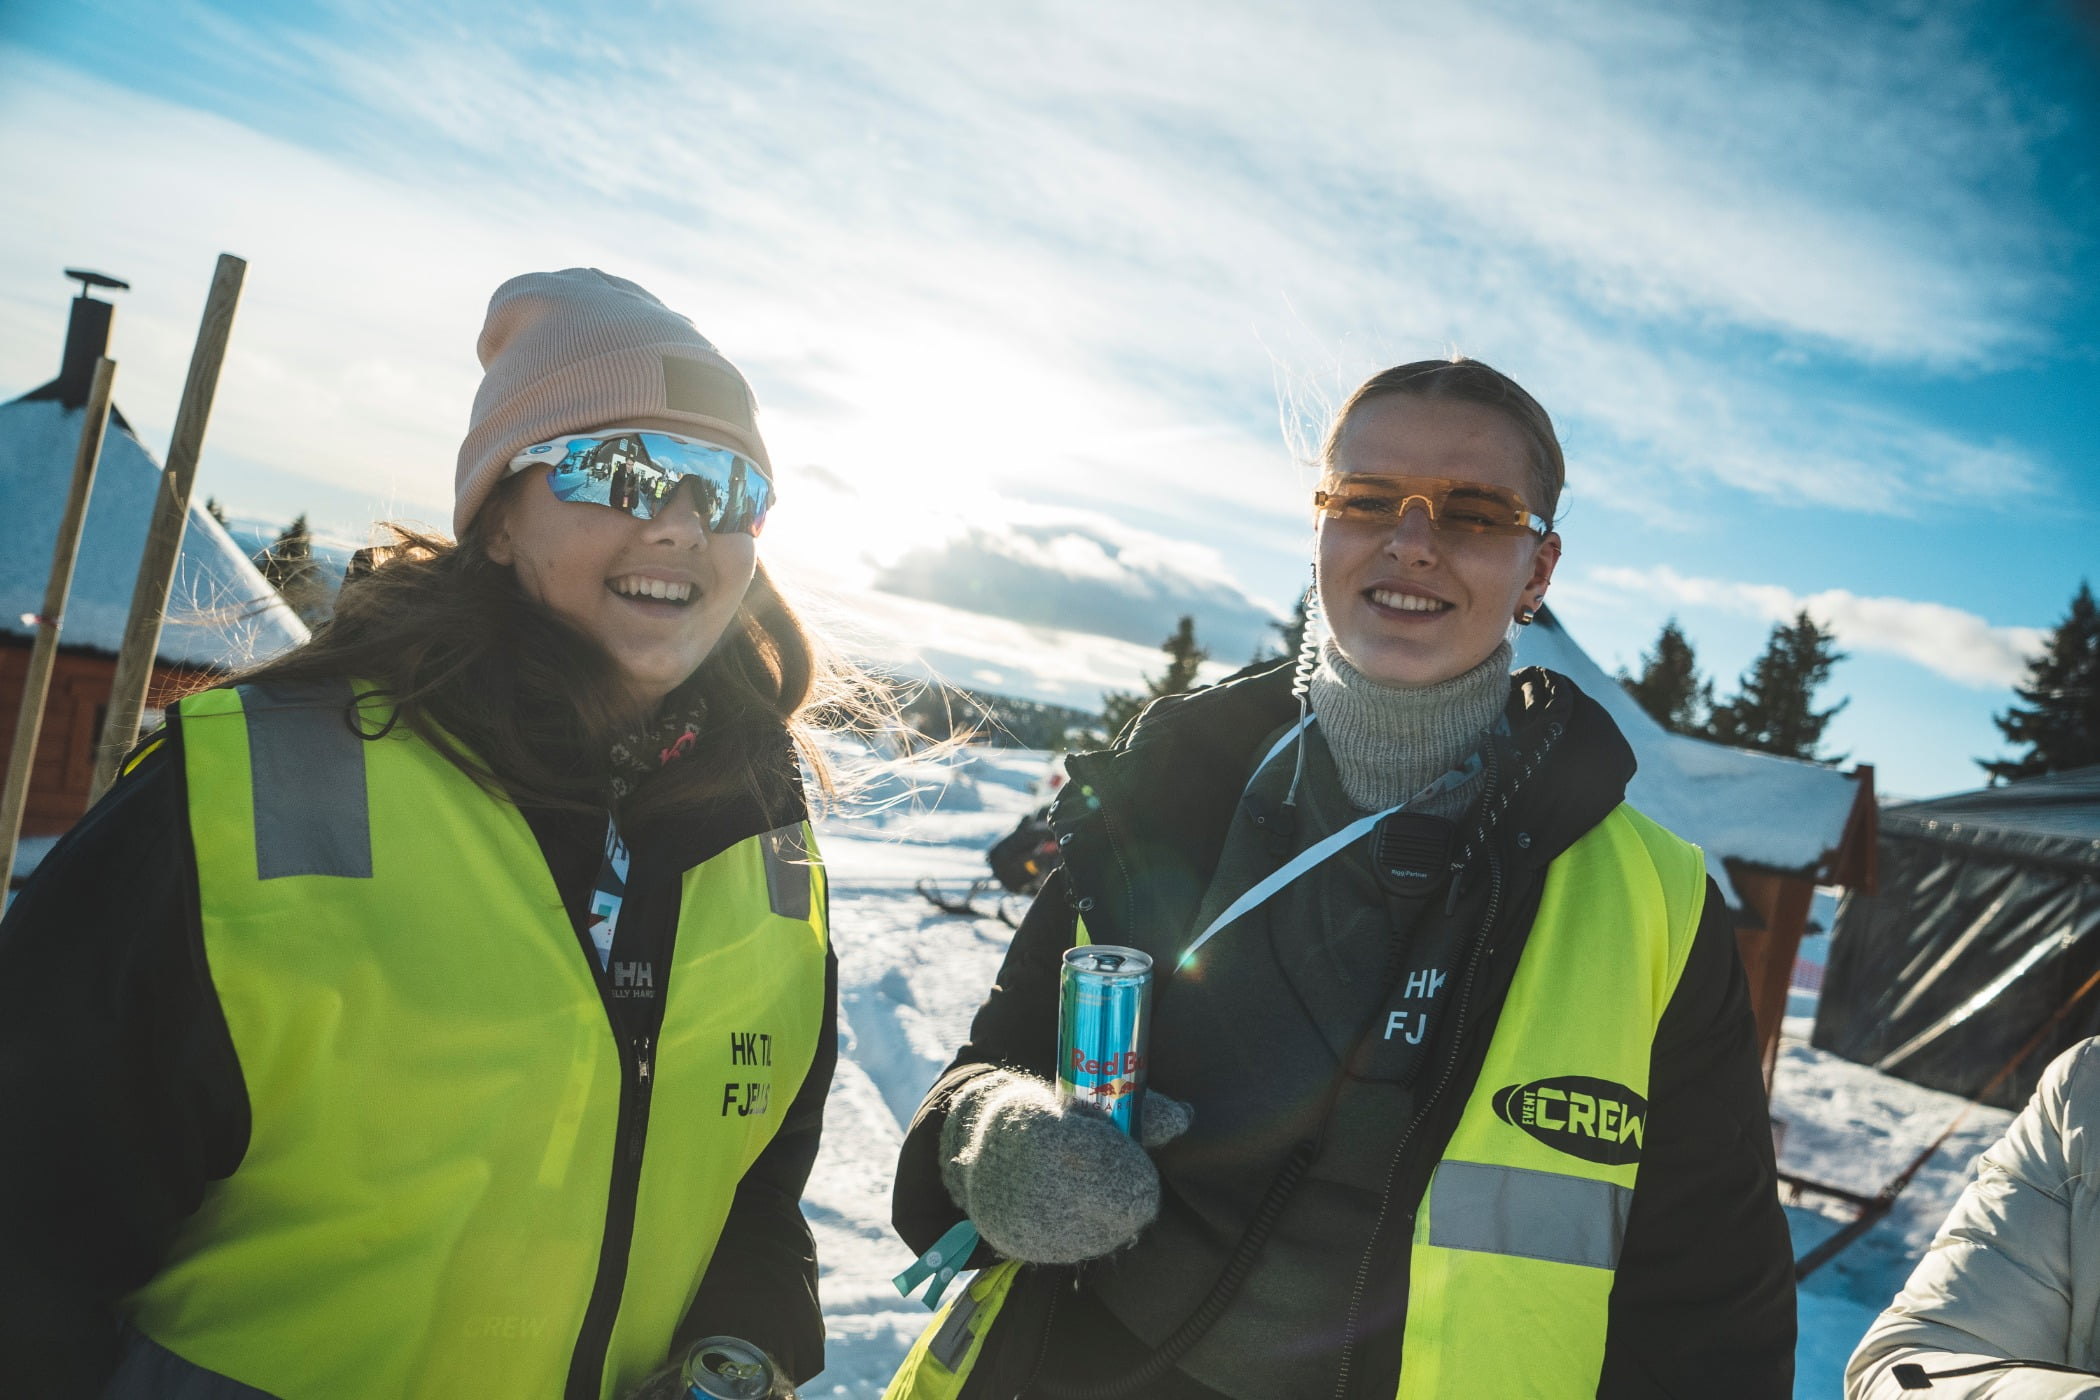 Personal protective equipment, Vision care, Snow, Glove, Cap, Jacket, Goggles, Winter, Eyewear